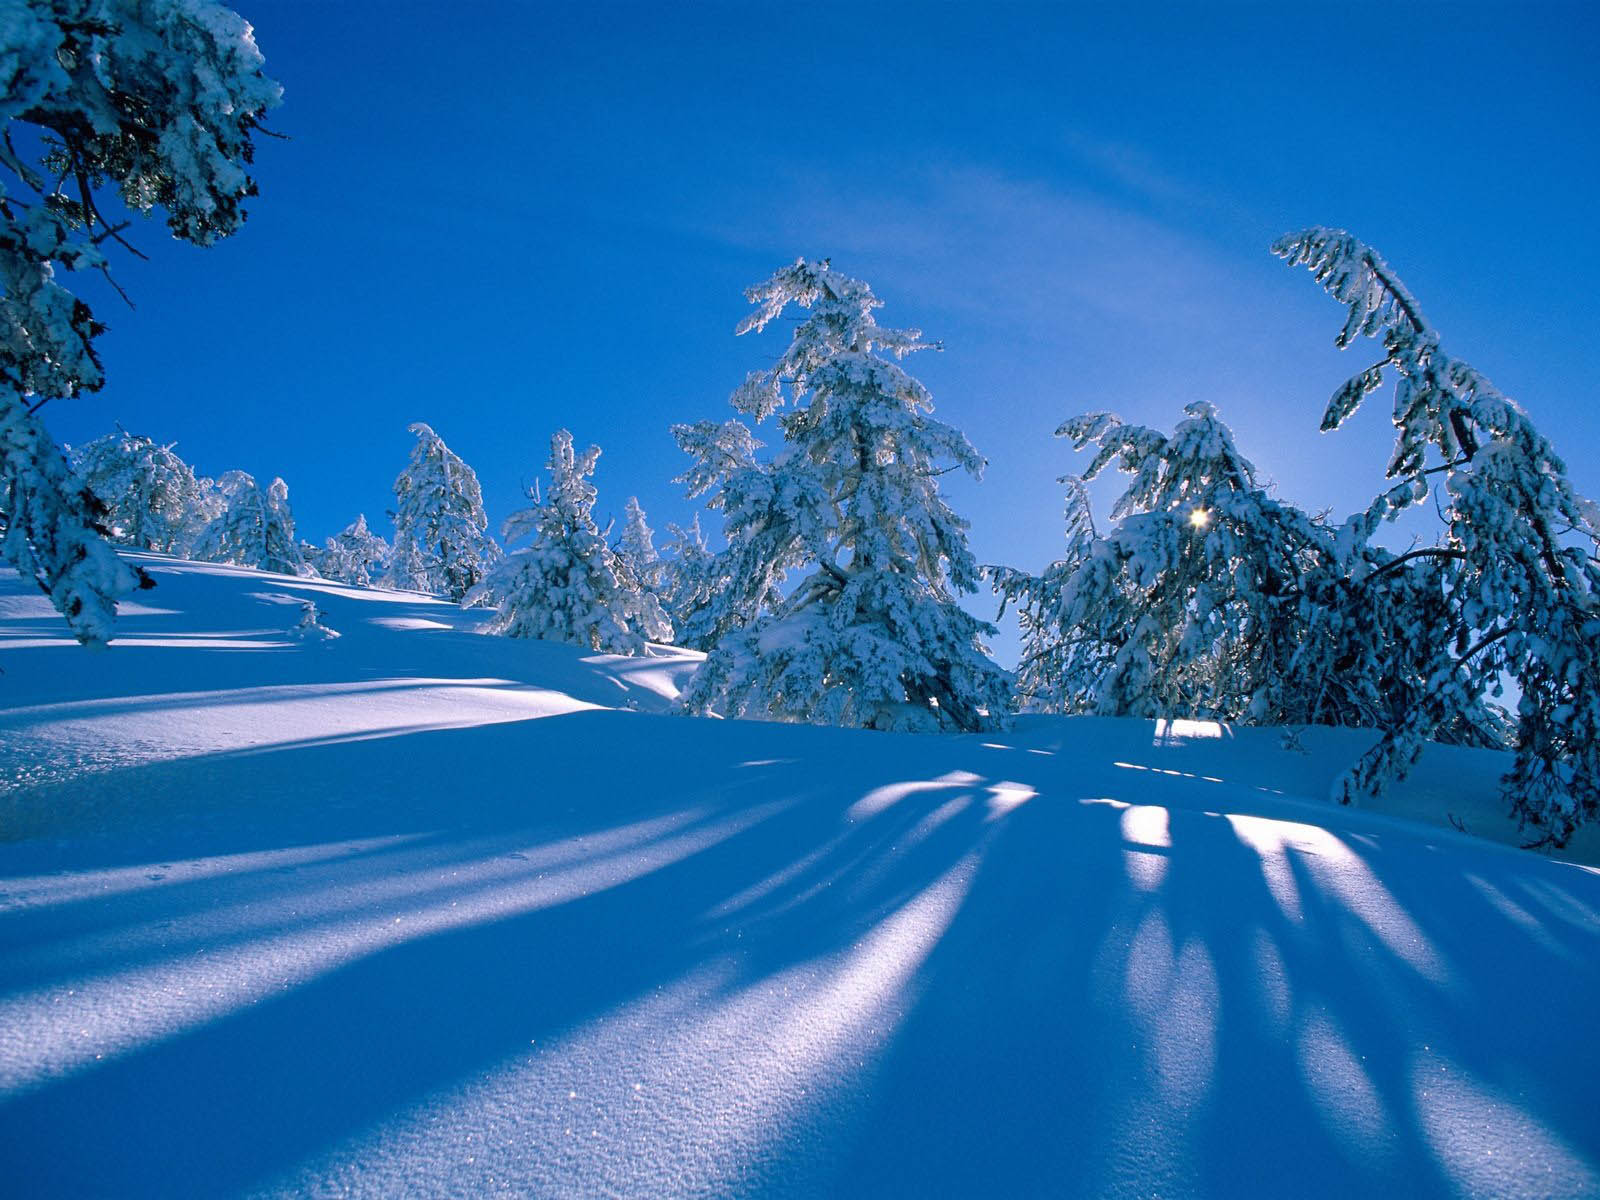 Winter Wallpaper For Desktop Background